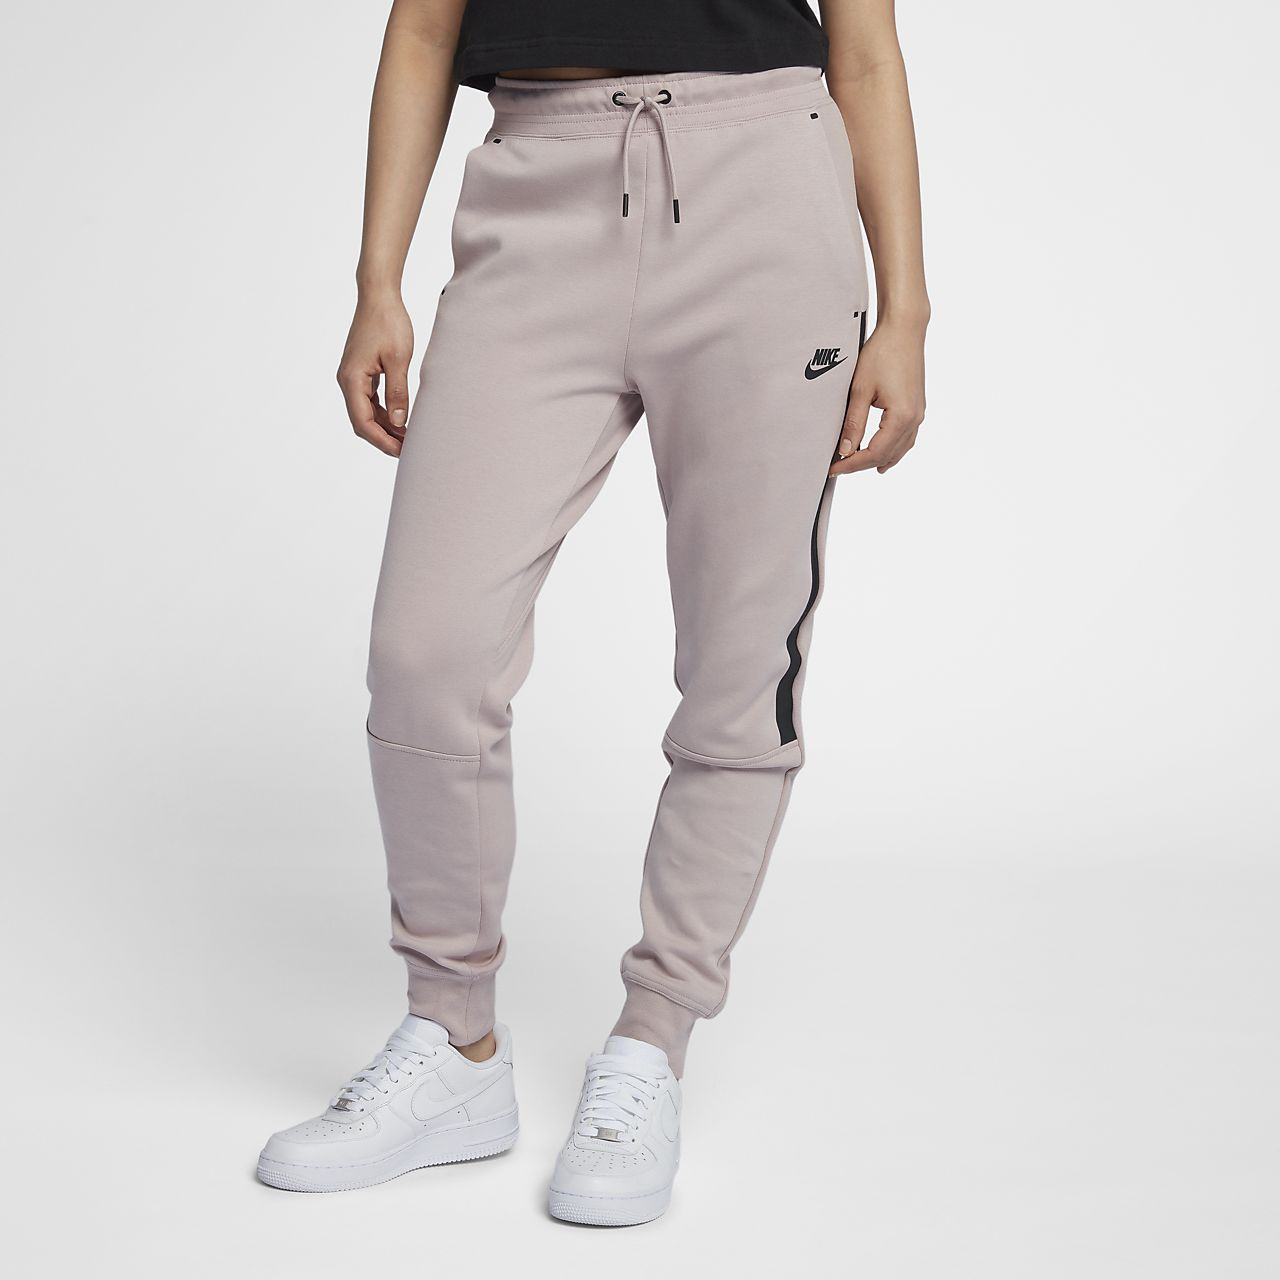 pantalon de survetement femme nike